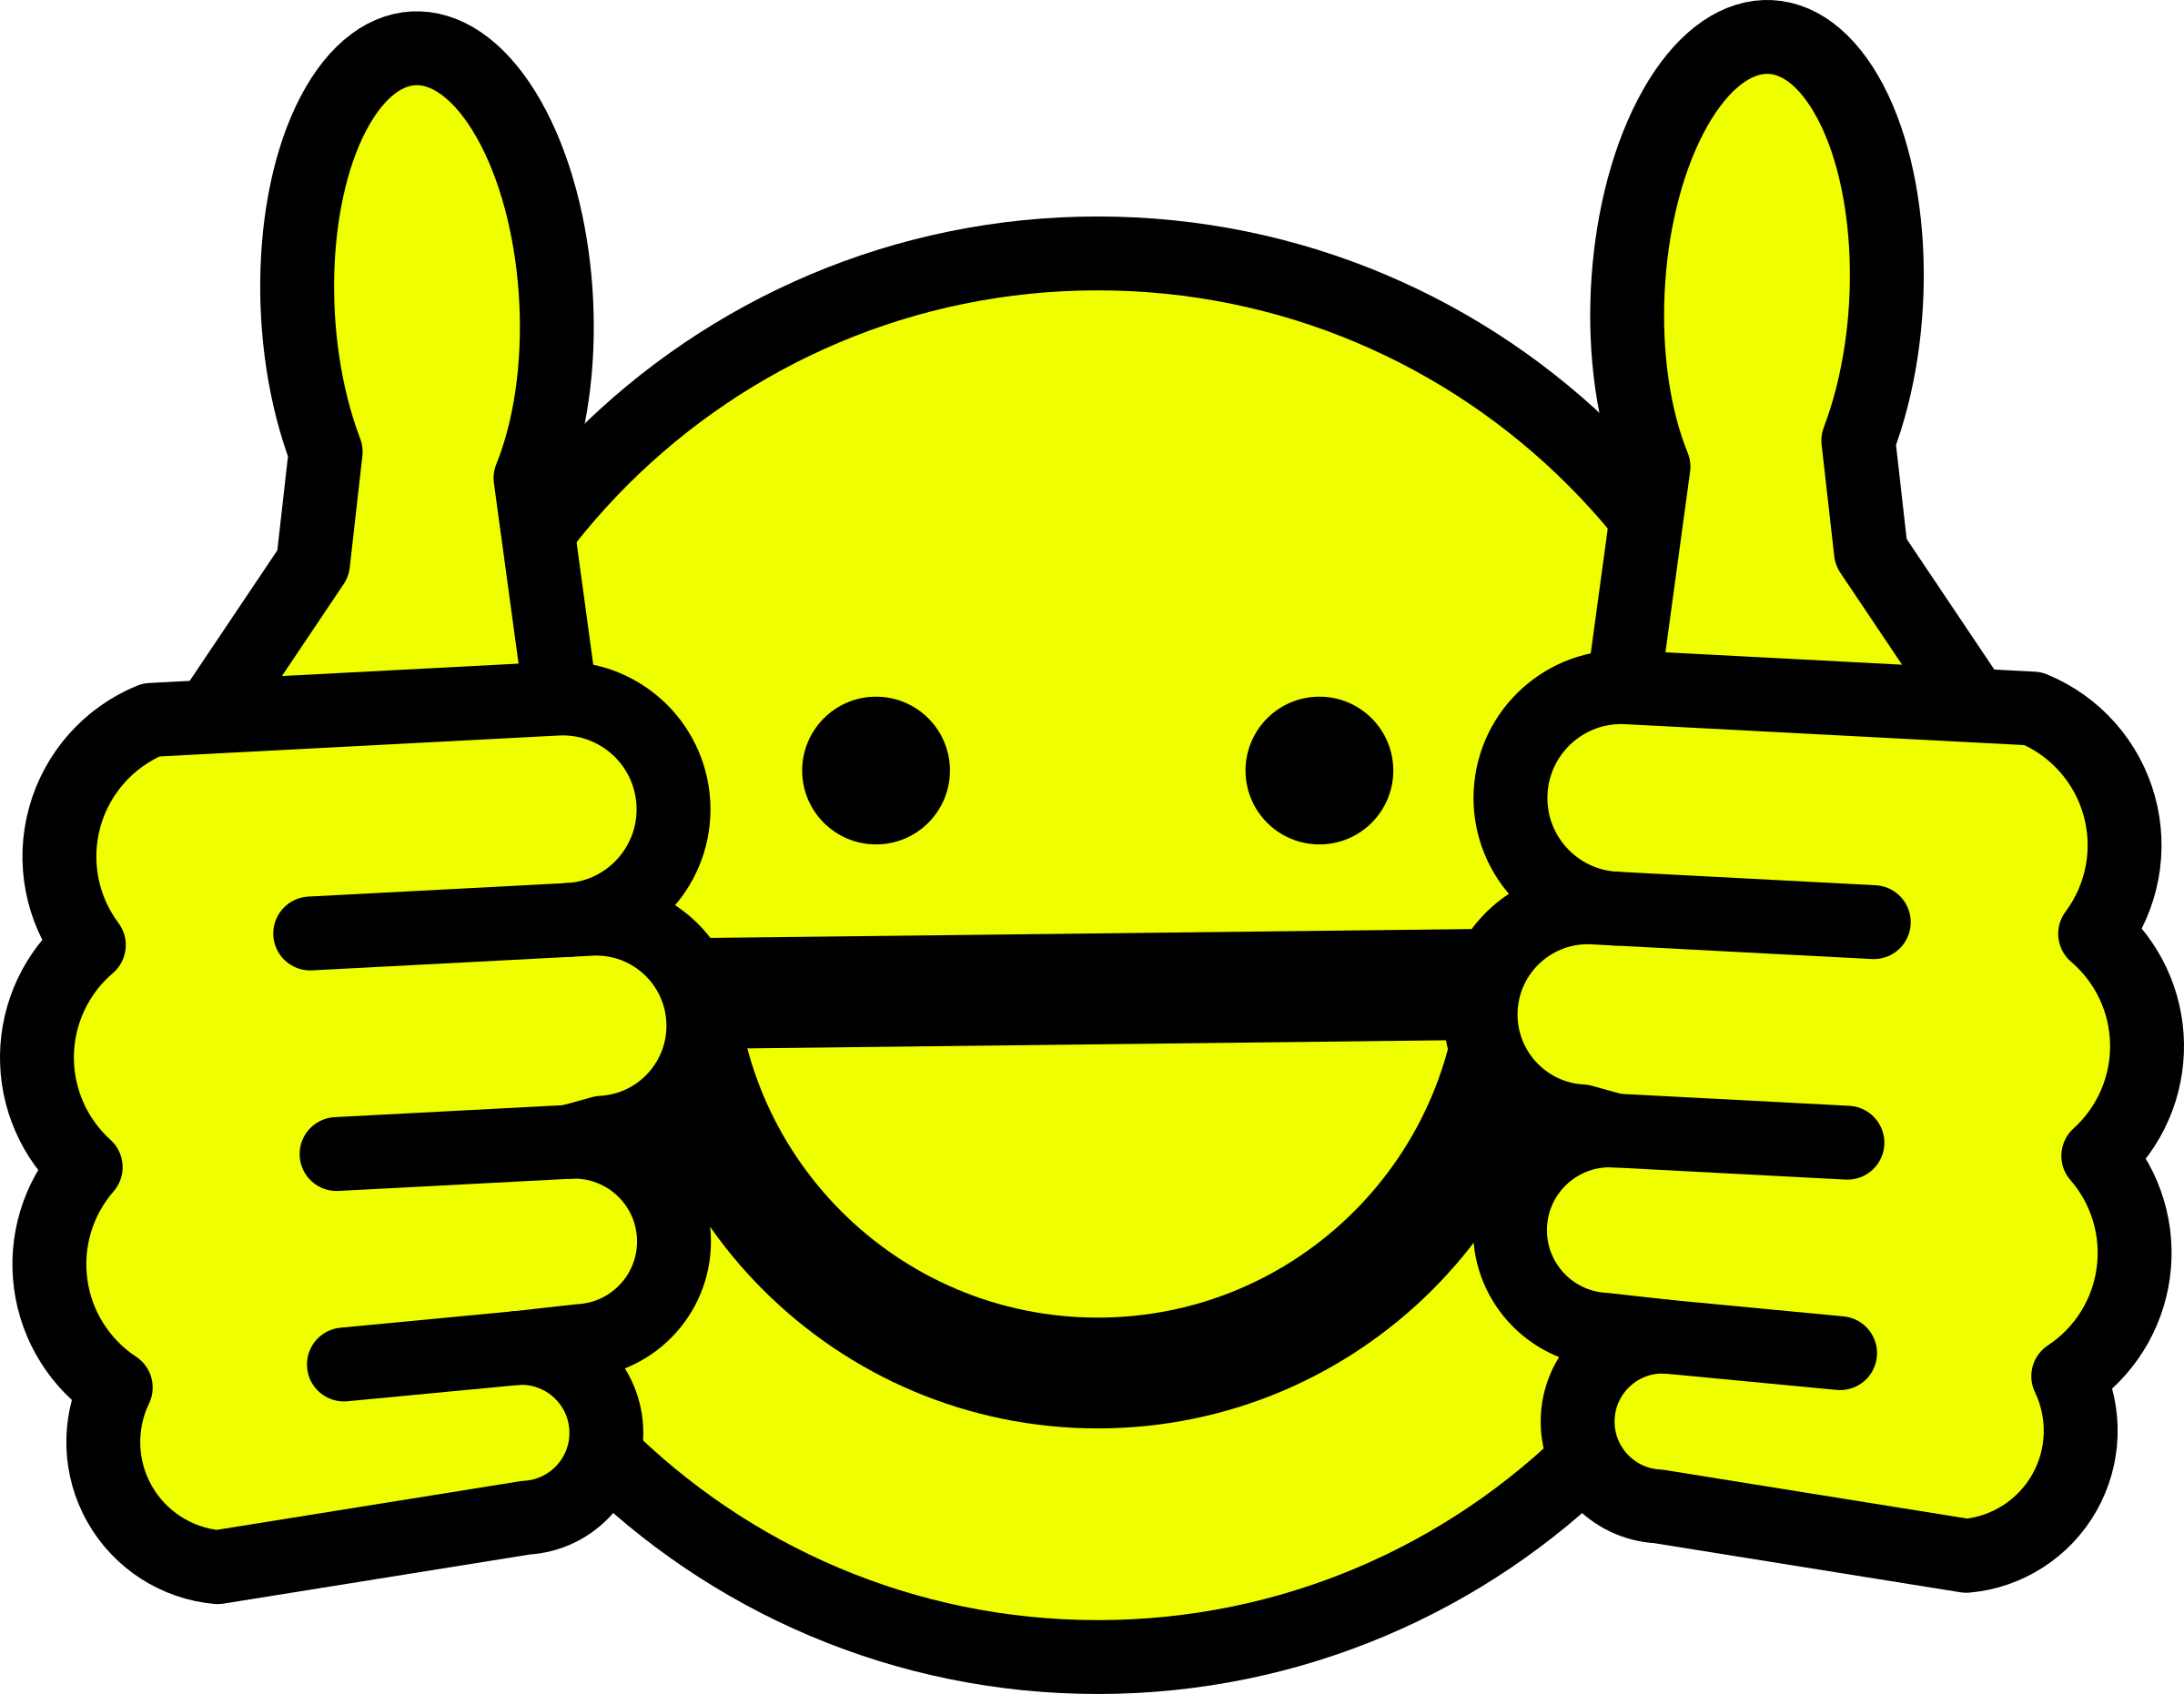 Awesome smiley face png. Image free icons and